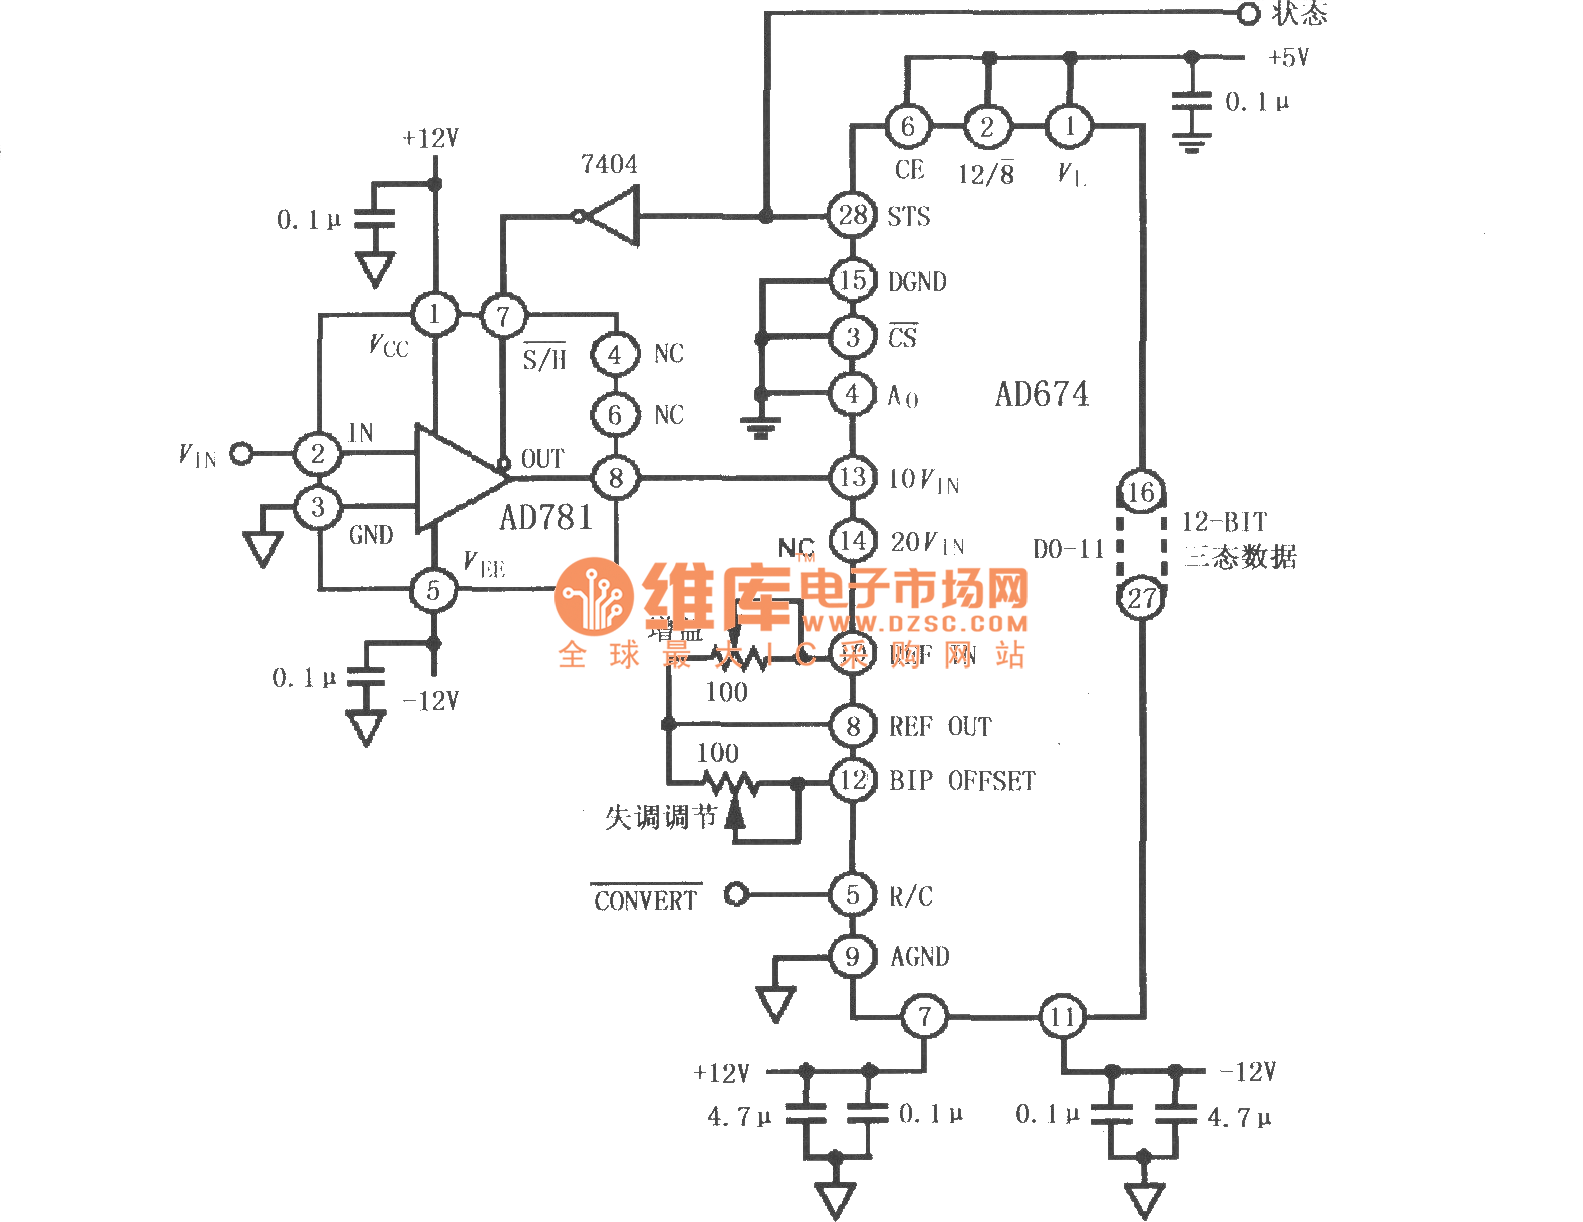 Interface Circuit Of Sample And Hold Amplifiers Ad781 And Ad674